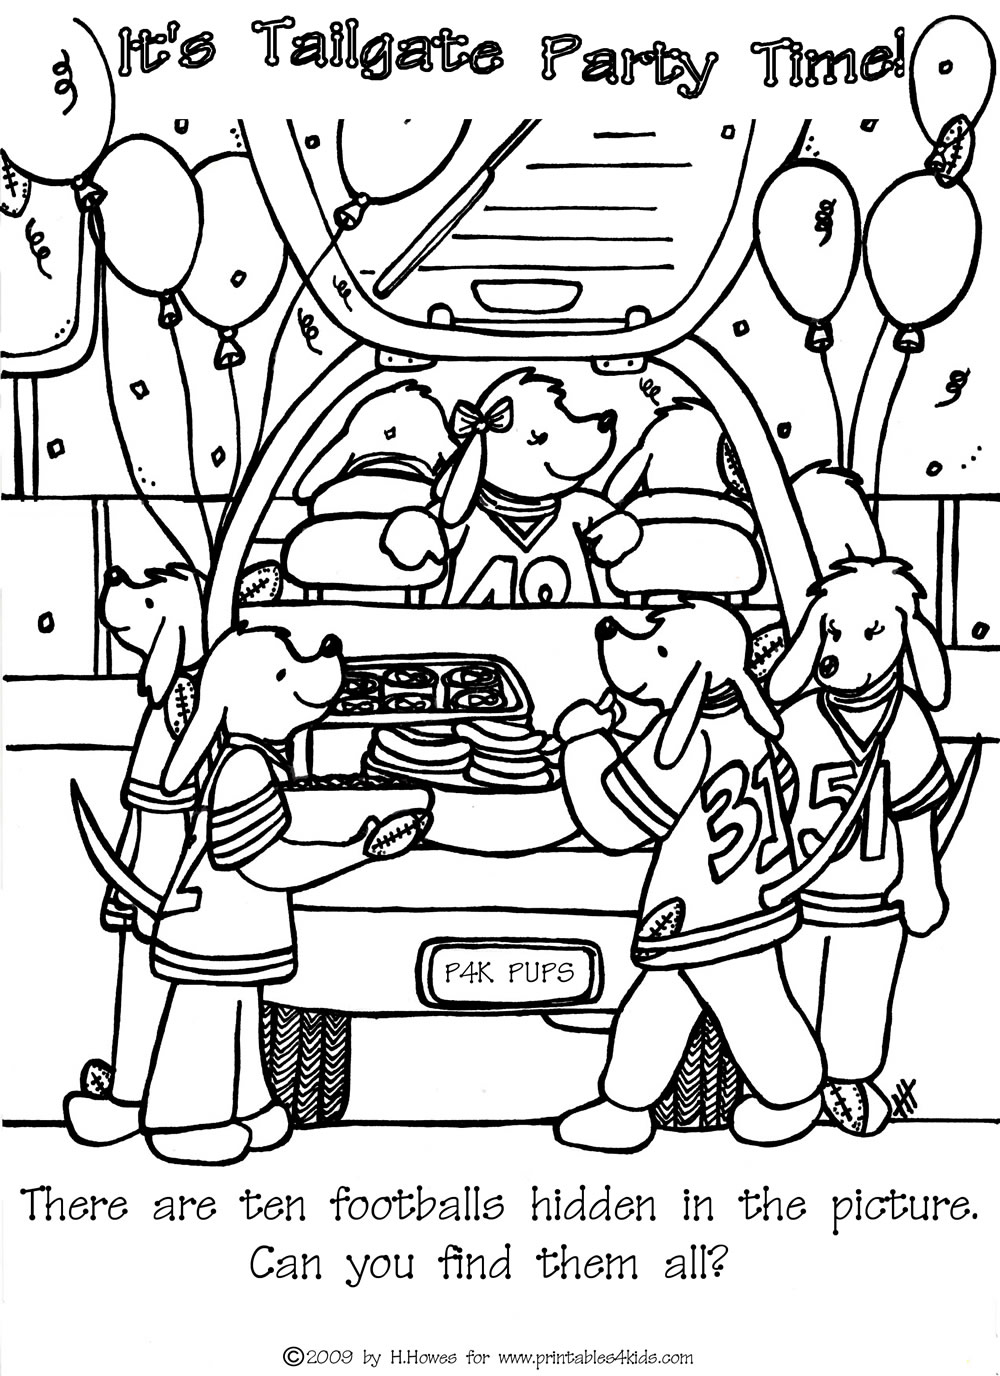 find the hidden footballs tailgate printables for kids free word search puzzles coloring pages and other activities - Hidden Pictures For Kids